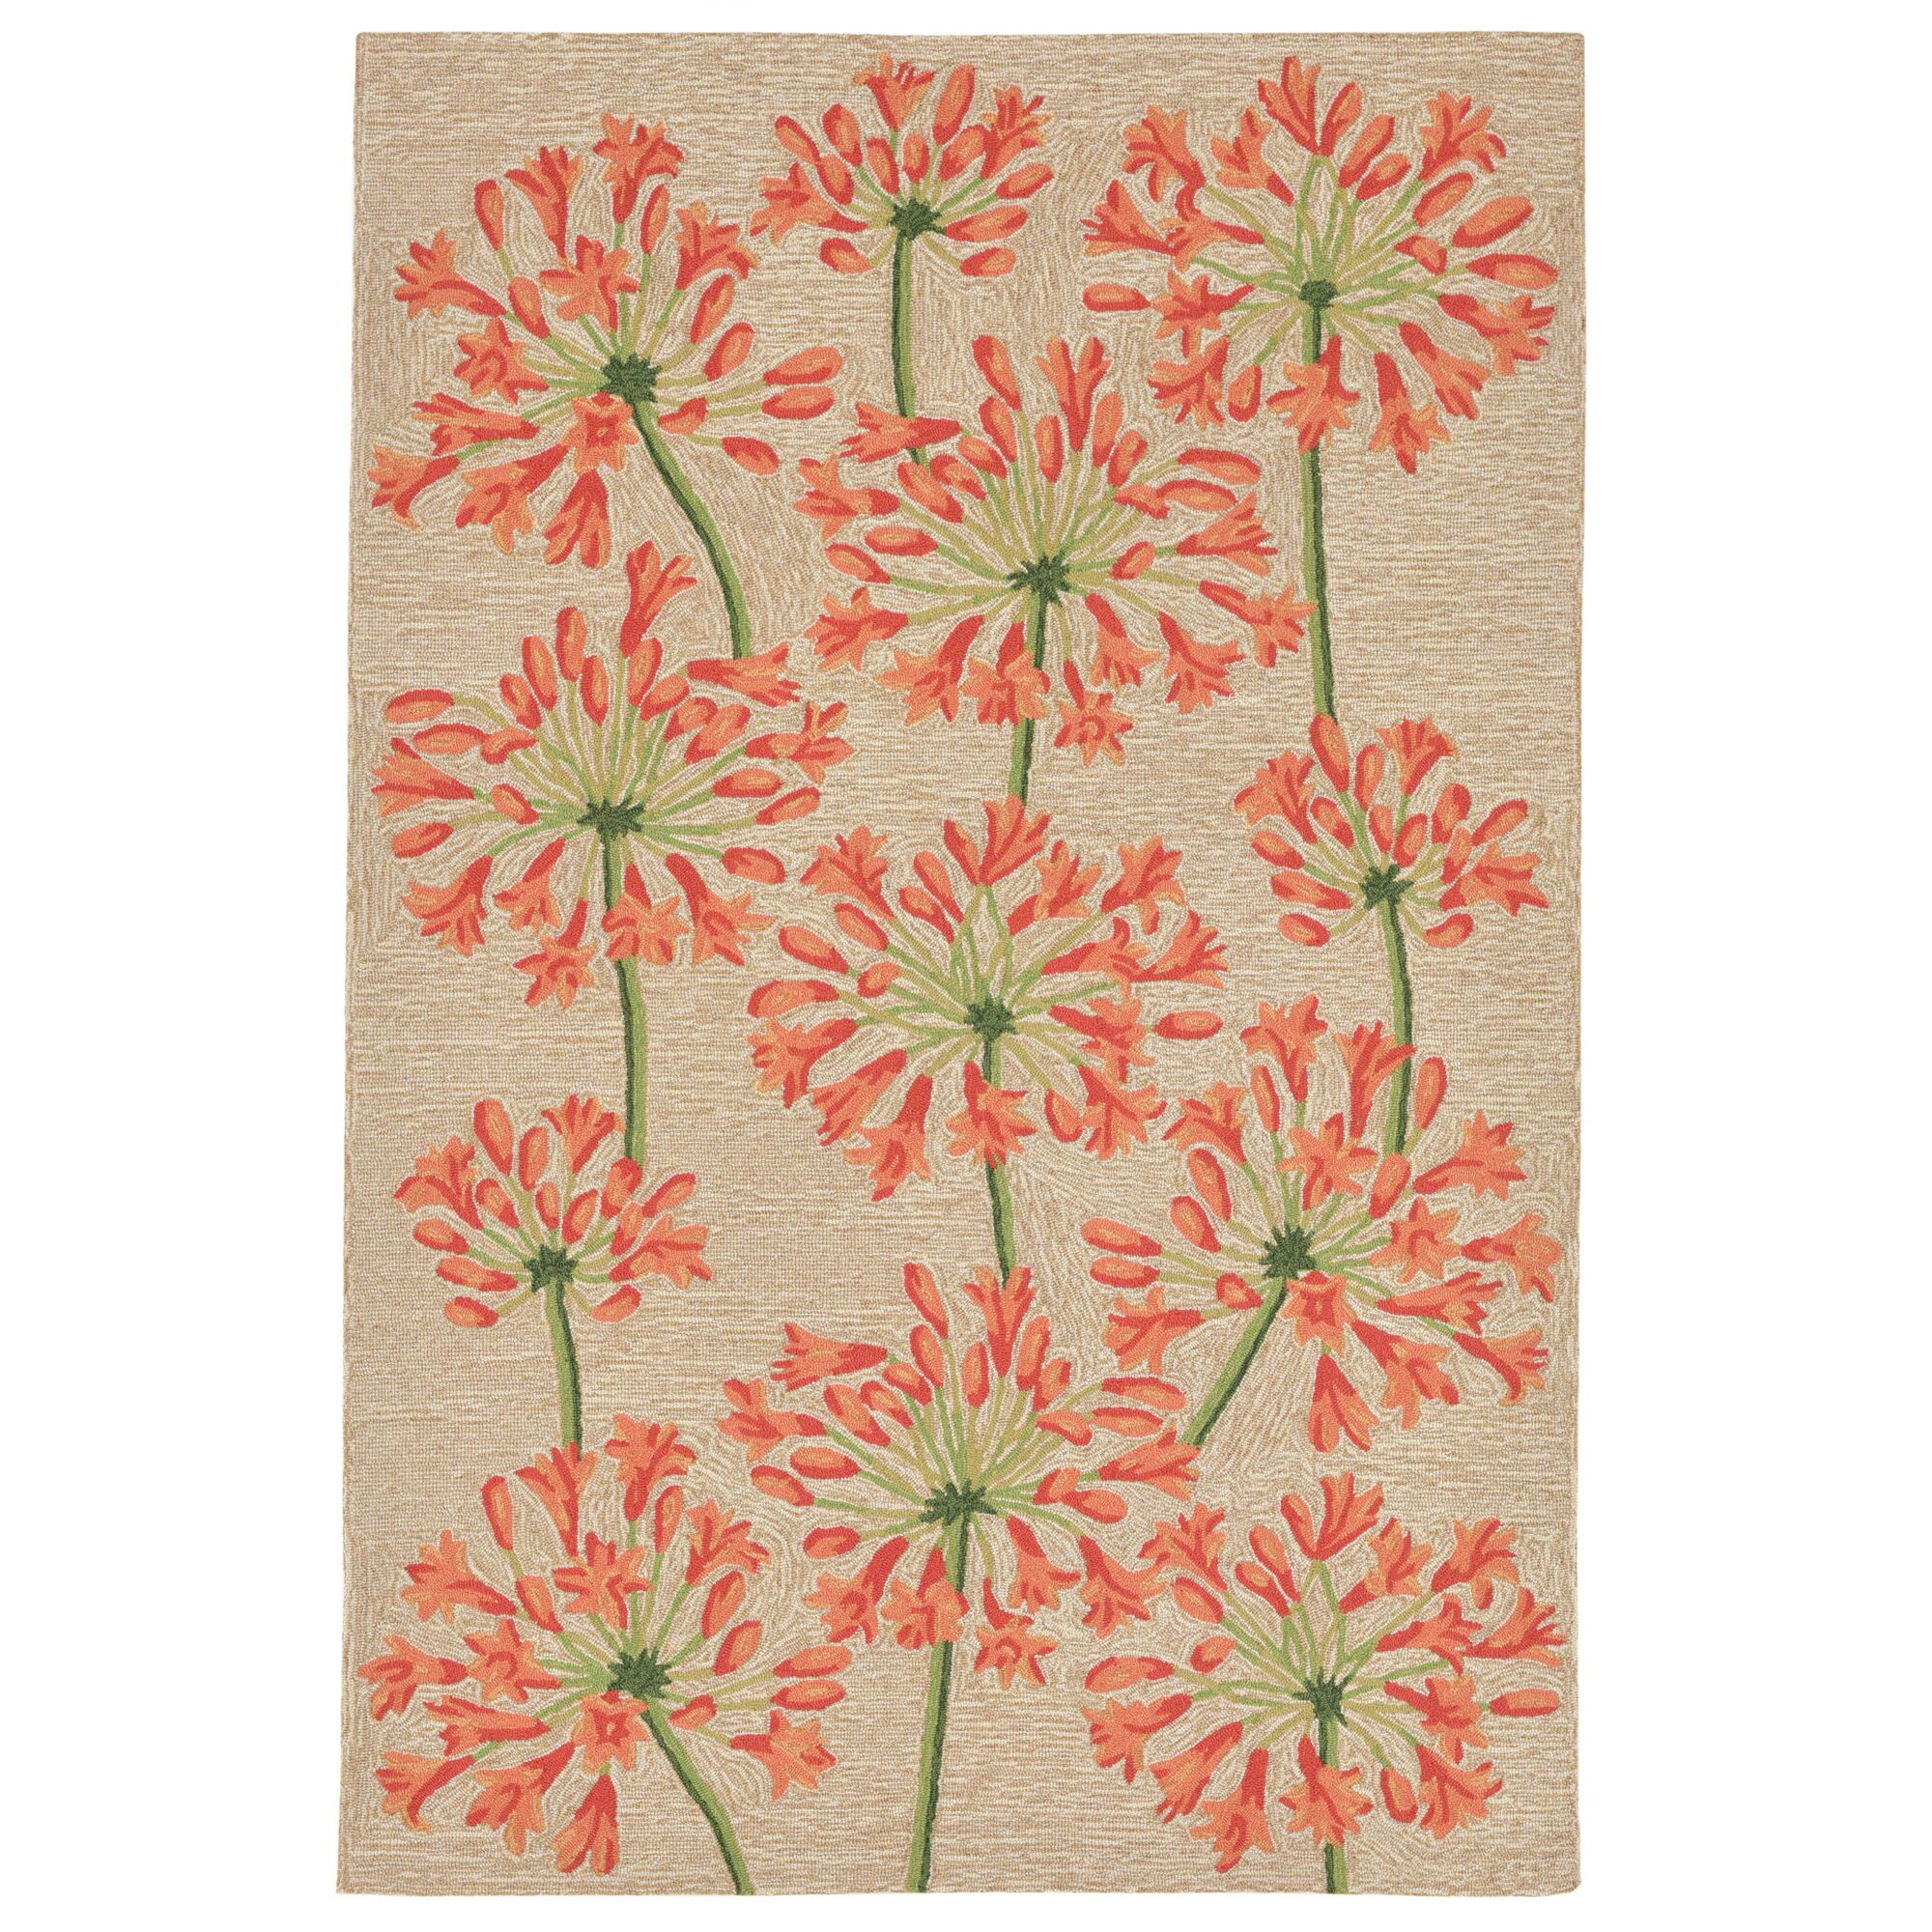 Dazey Lily Hand-Tufted Beige/Red Indoor/Outdoor Area Rug Rug Size: 7'6